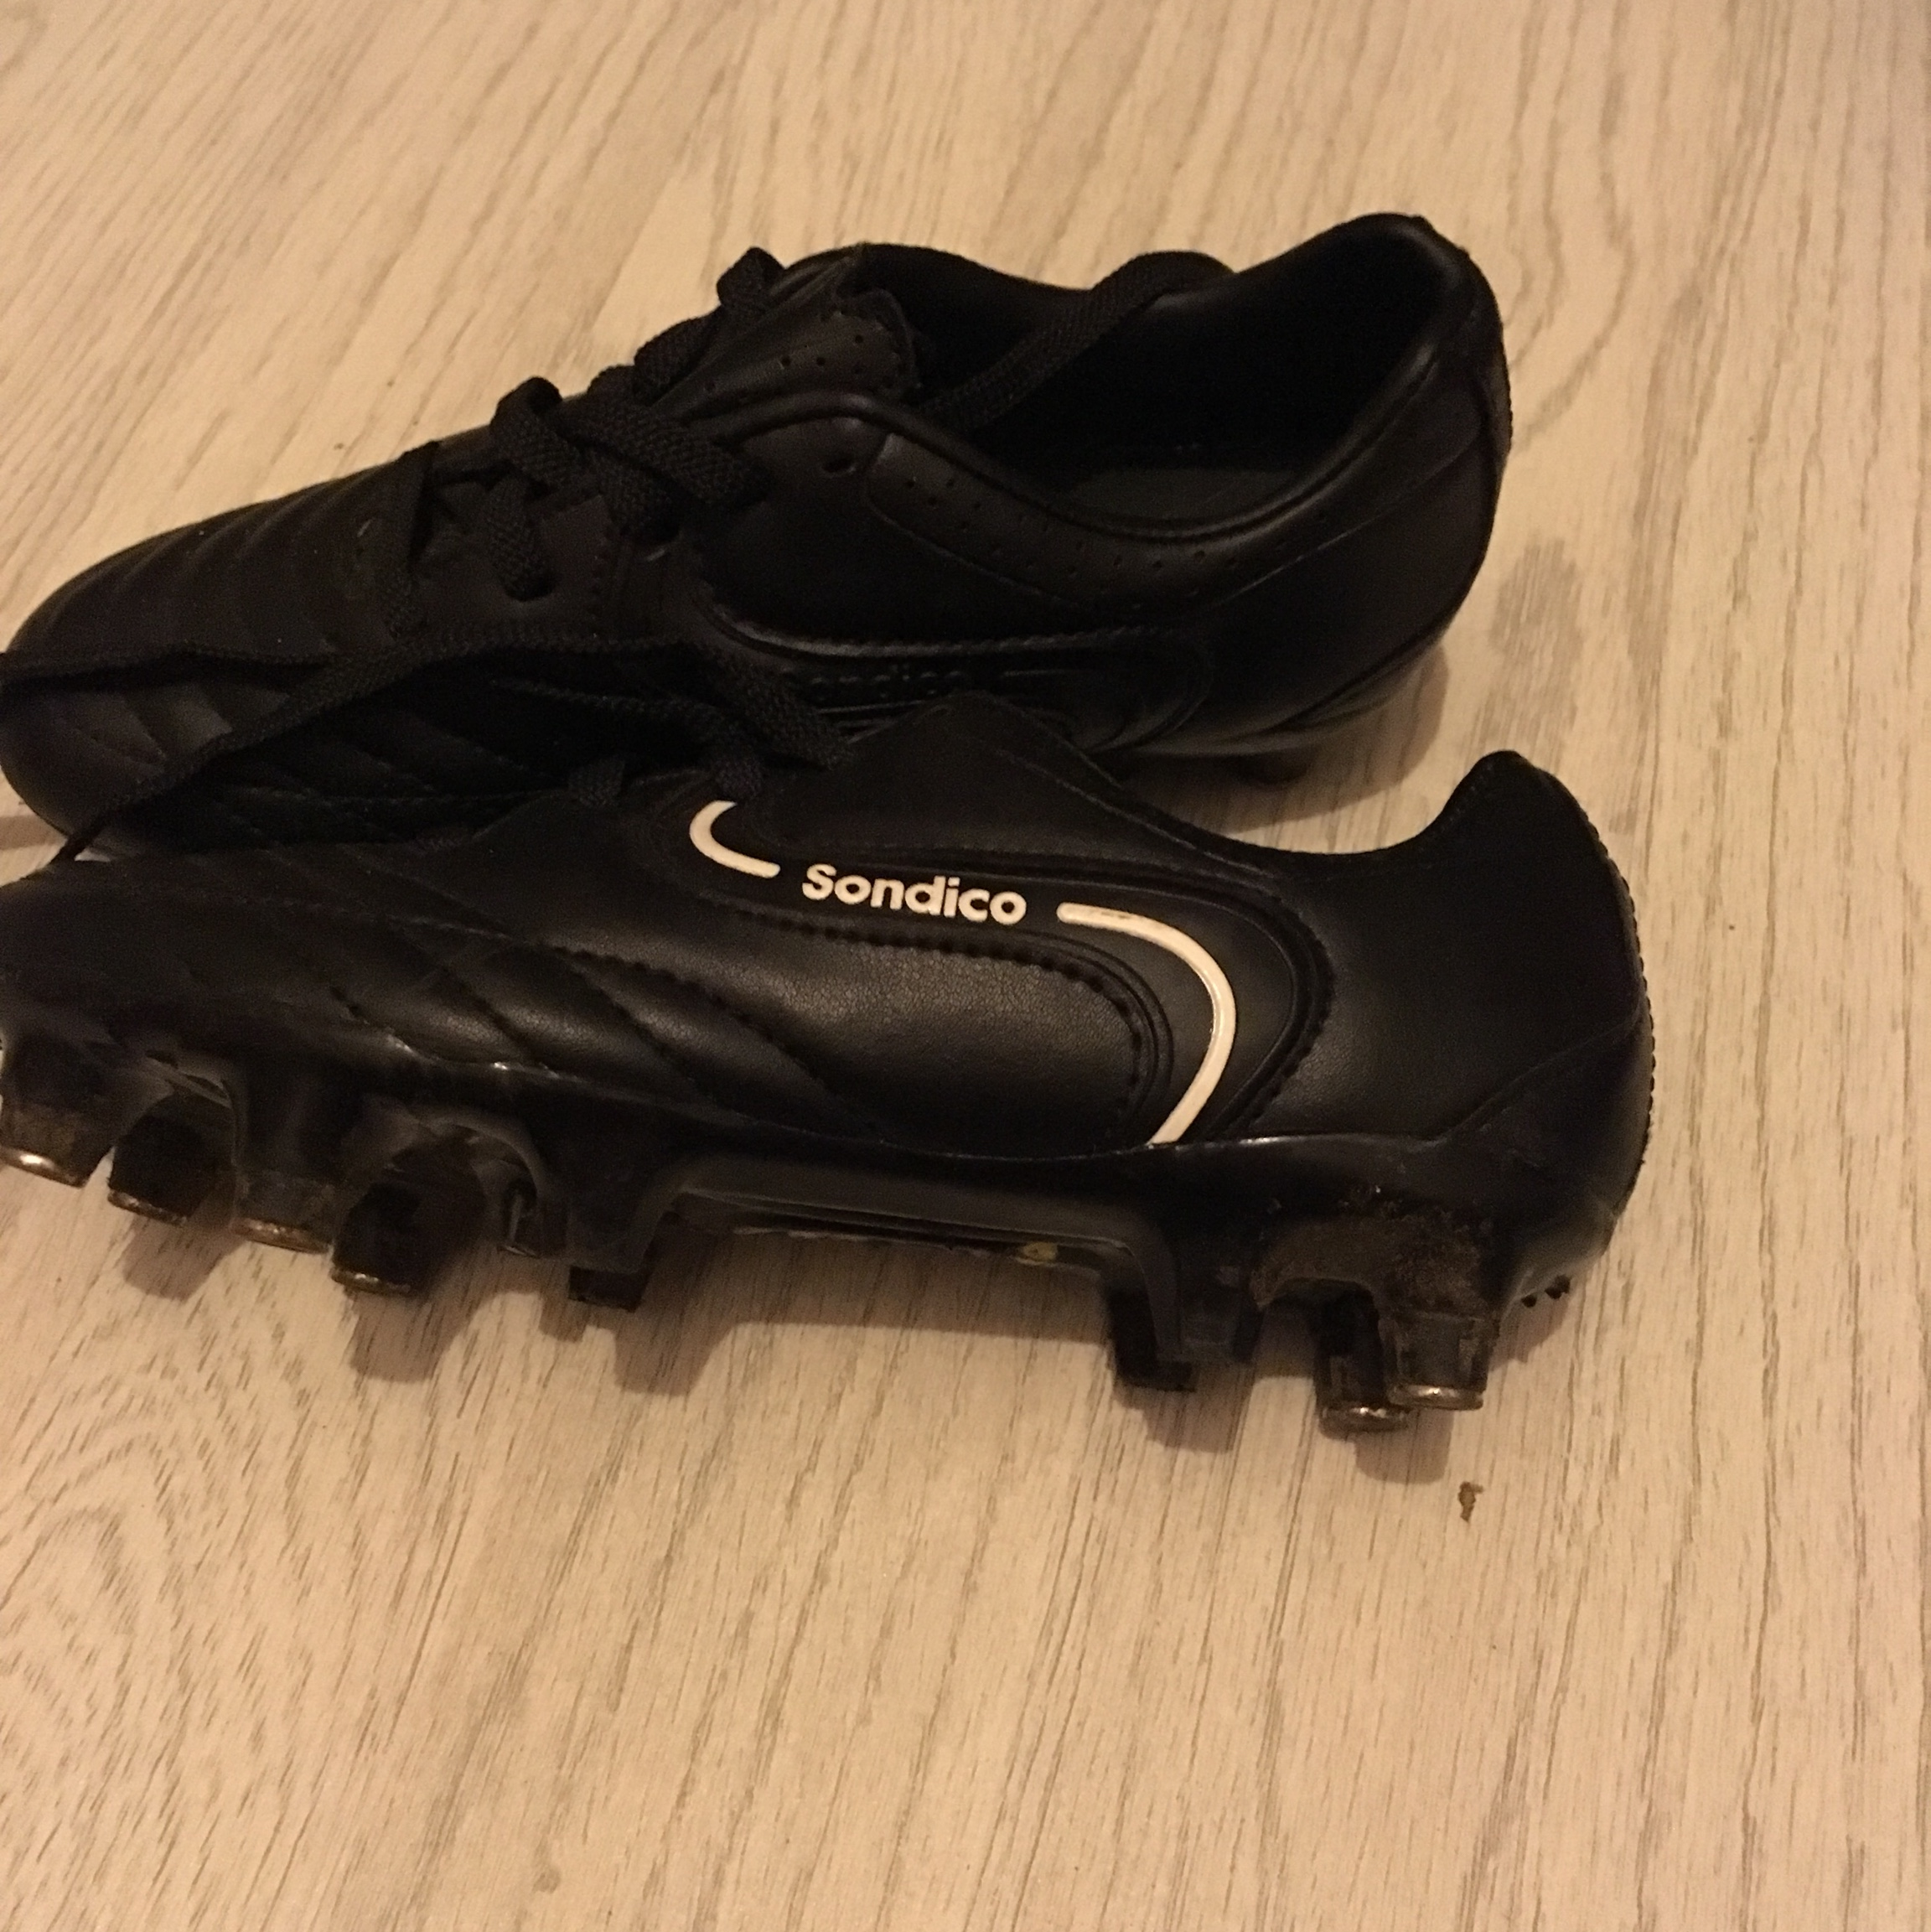 Sondico football boots c13 . Only been